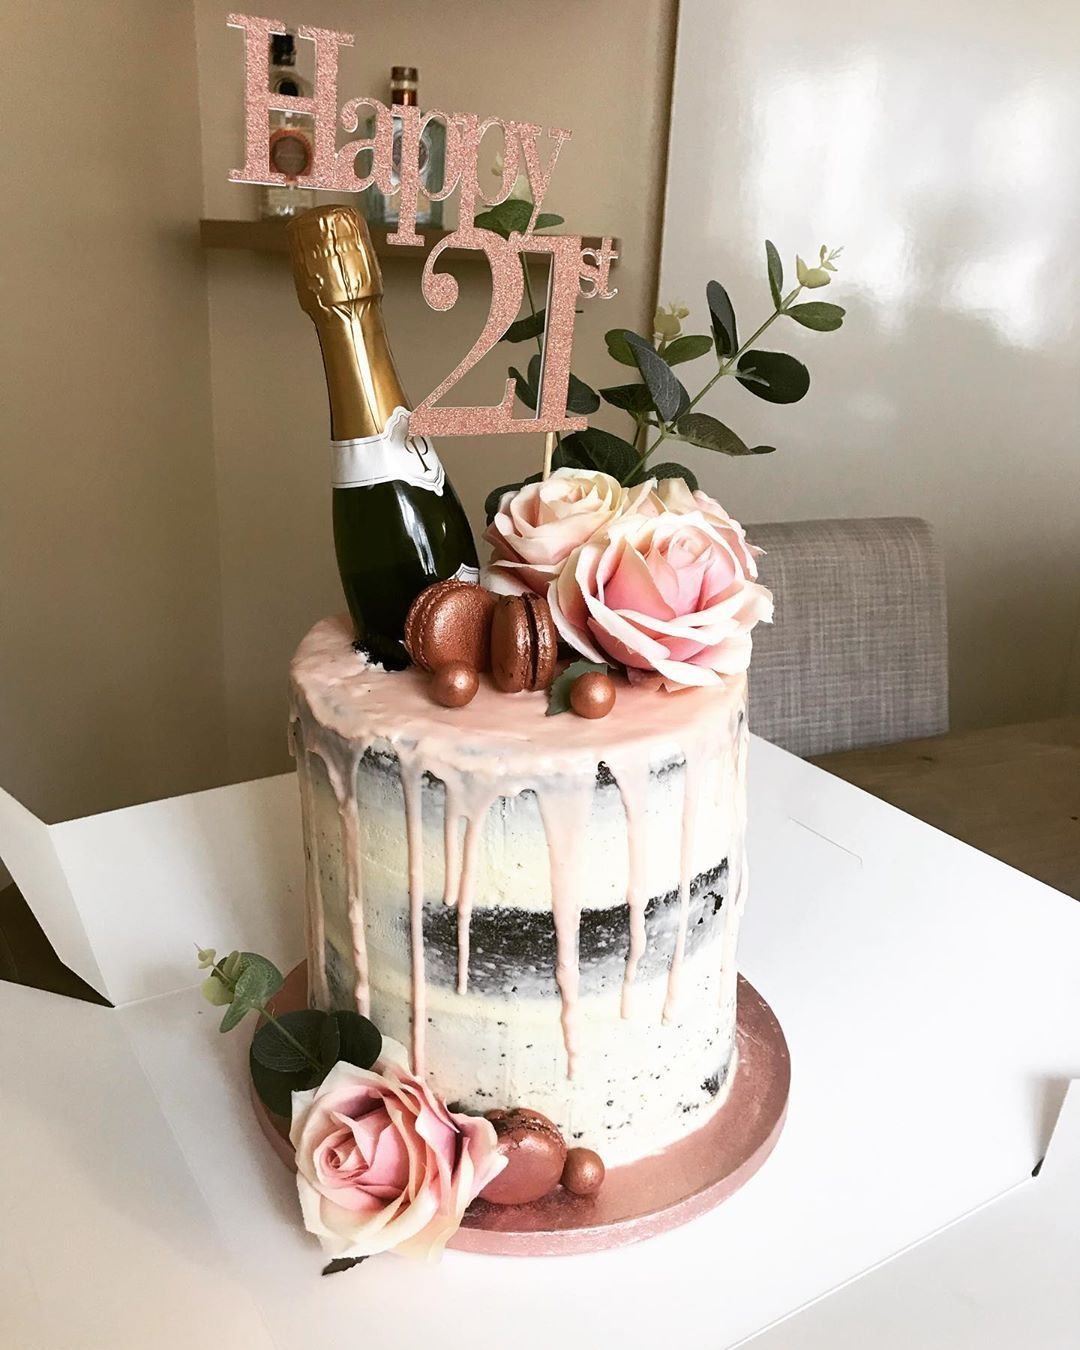 21st Birthday cake being collected later today... chocolate semi naked cake with a white chocolate pink ganache drop... oh and a little bottle of bubbly because you're only 21 once! - zonguldak #21stbirthdaydecorations